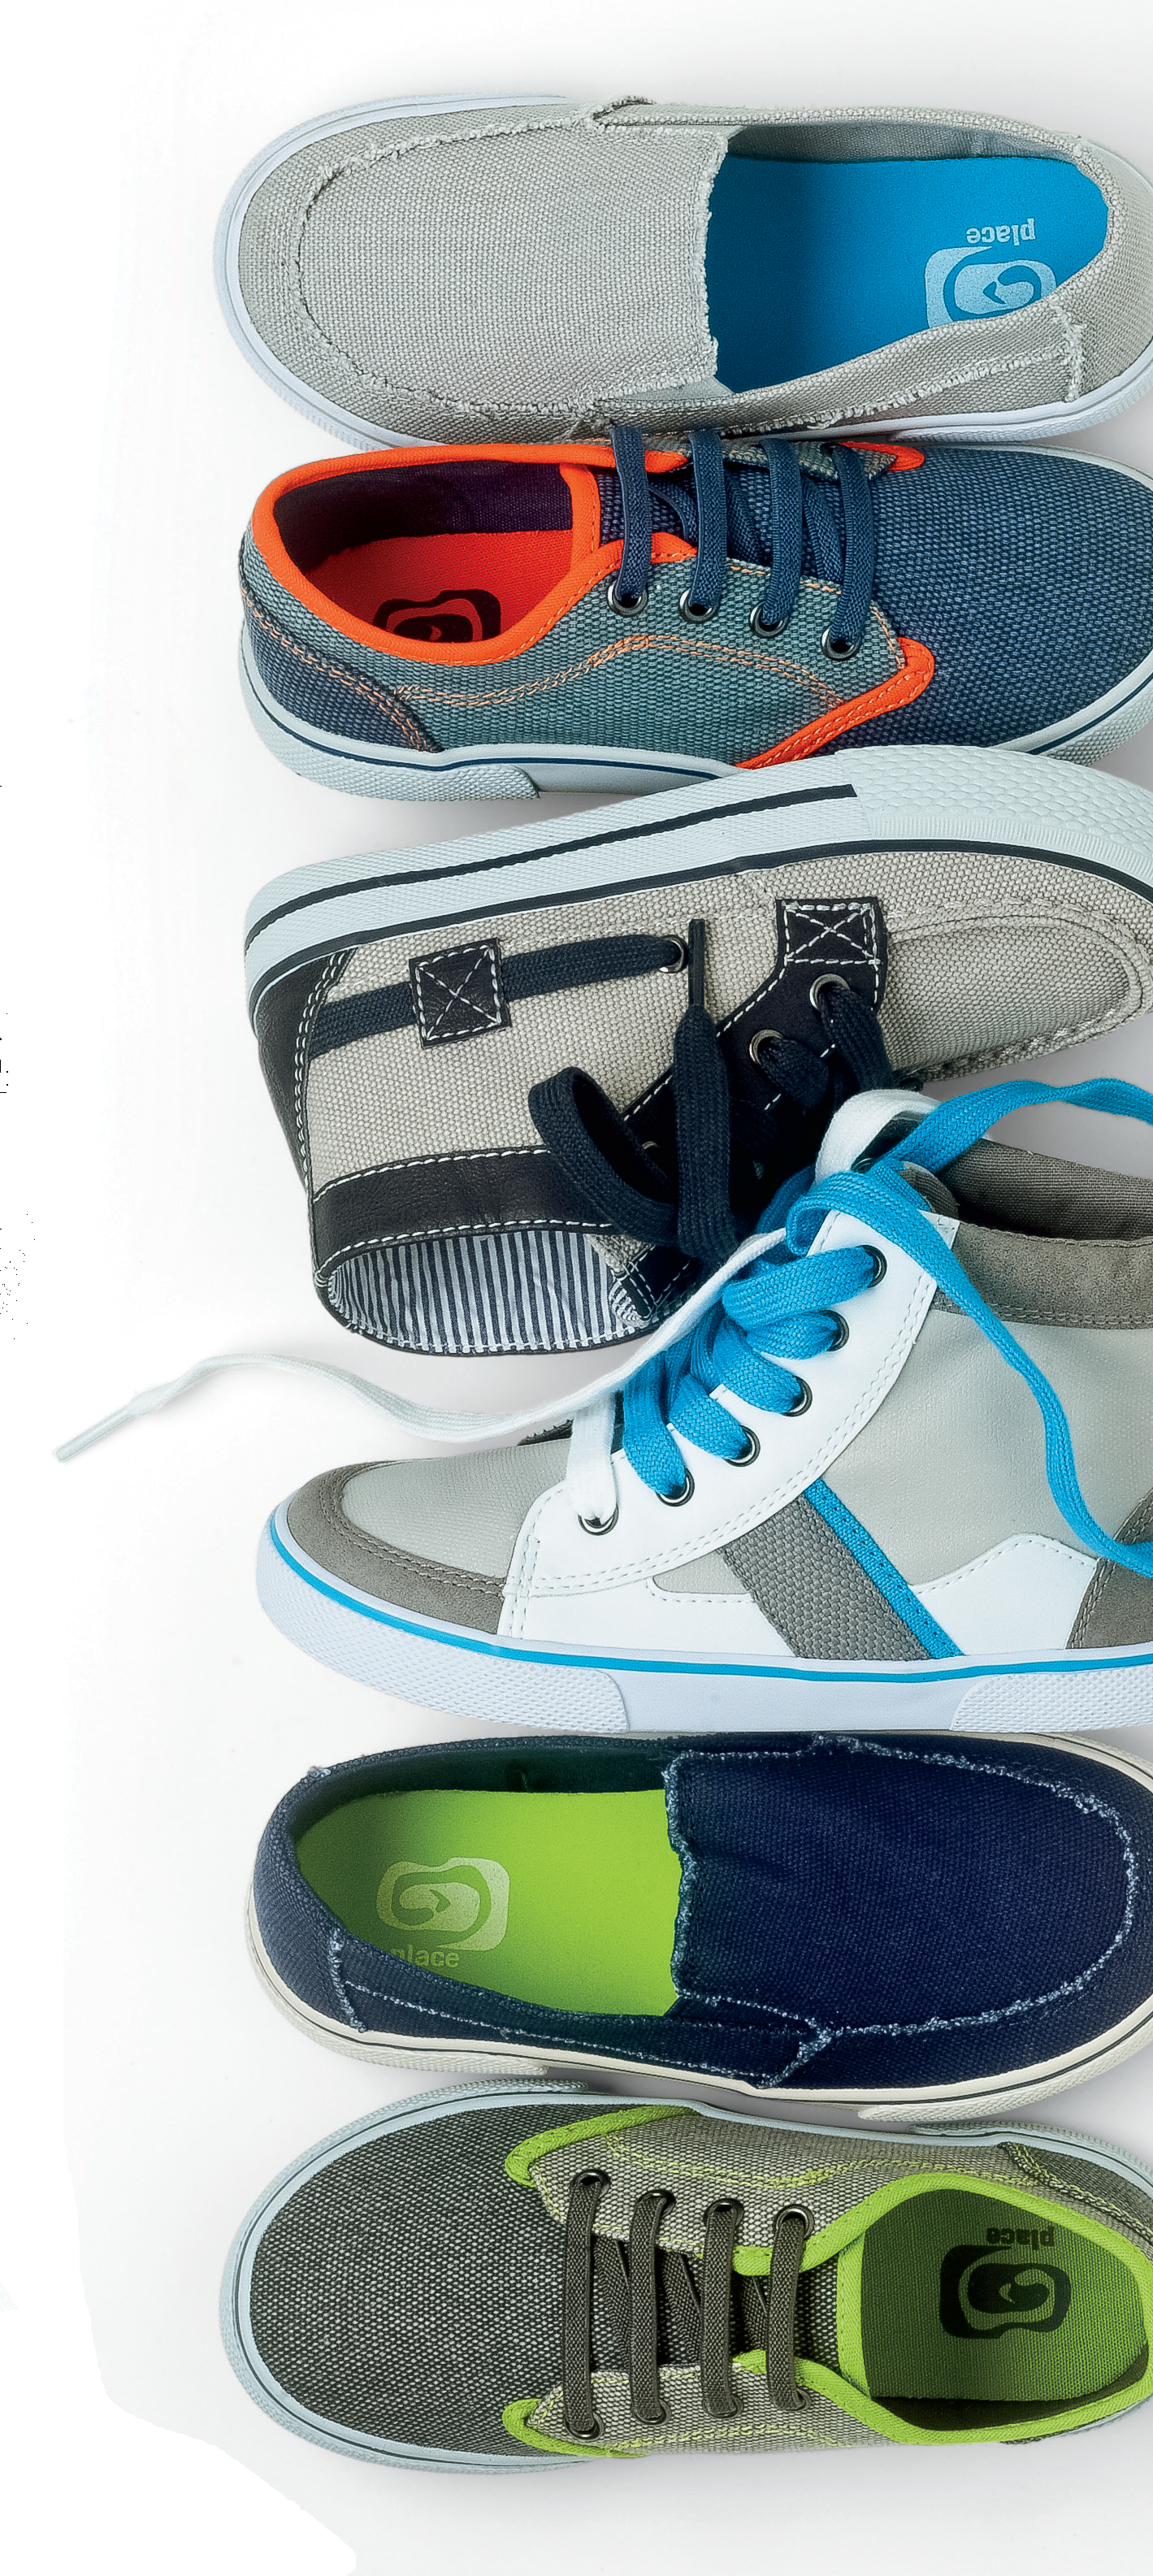 Boy shoes, Childrens shoes, Baby boy shoes